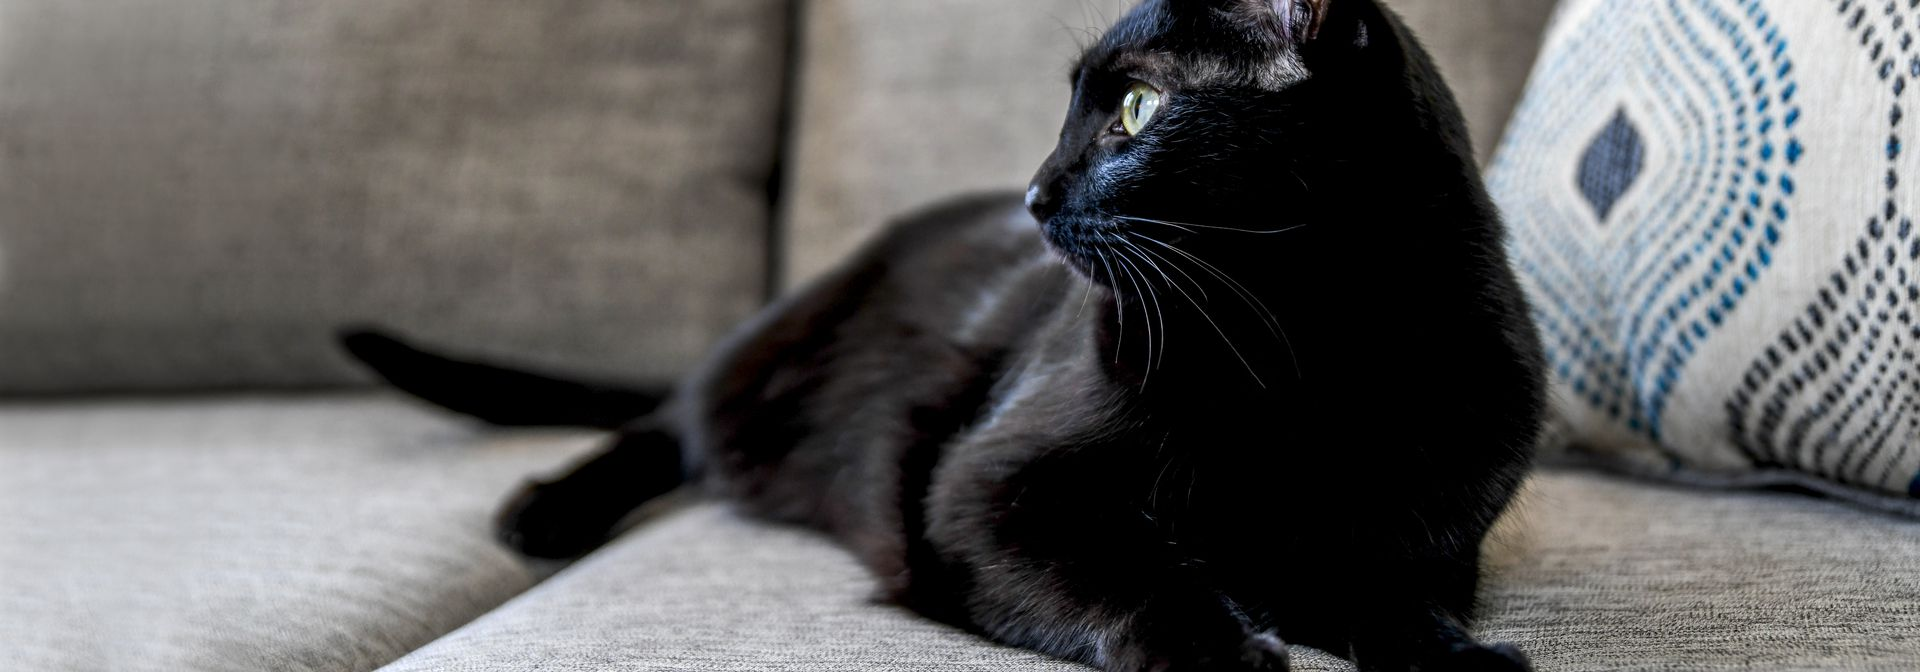 A black cat sitting on a couch